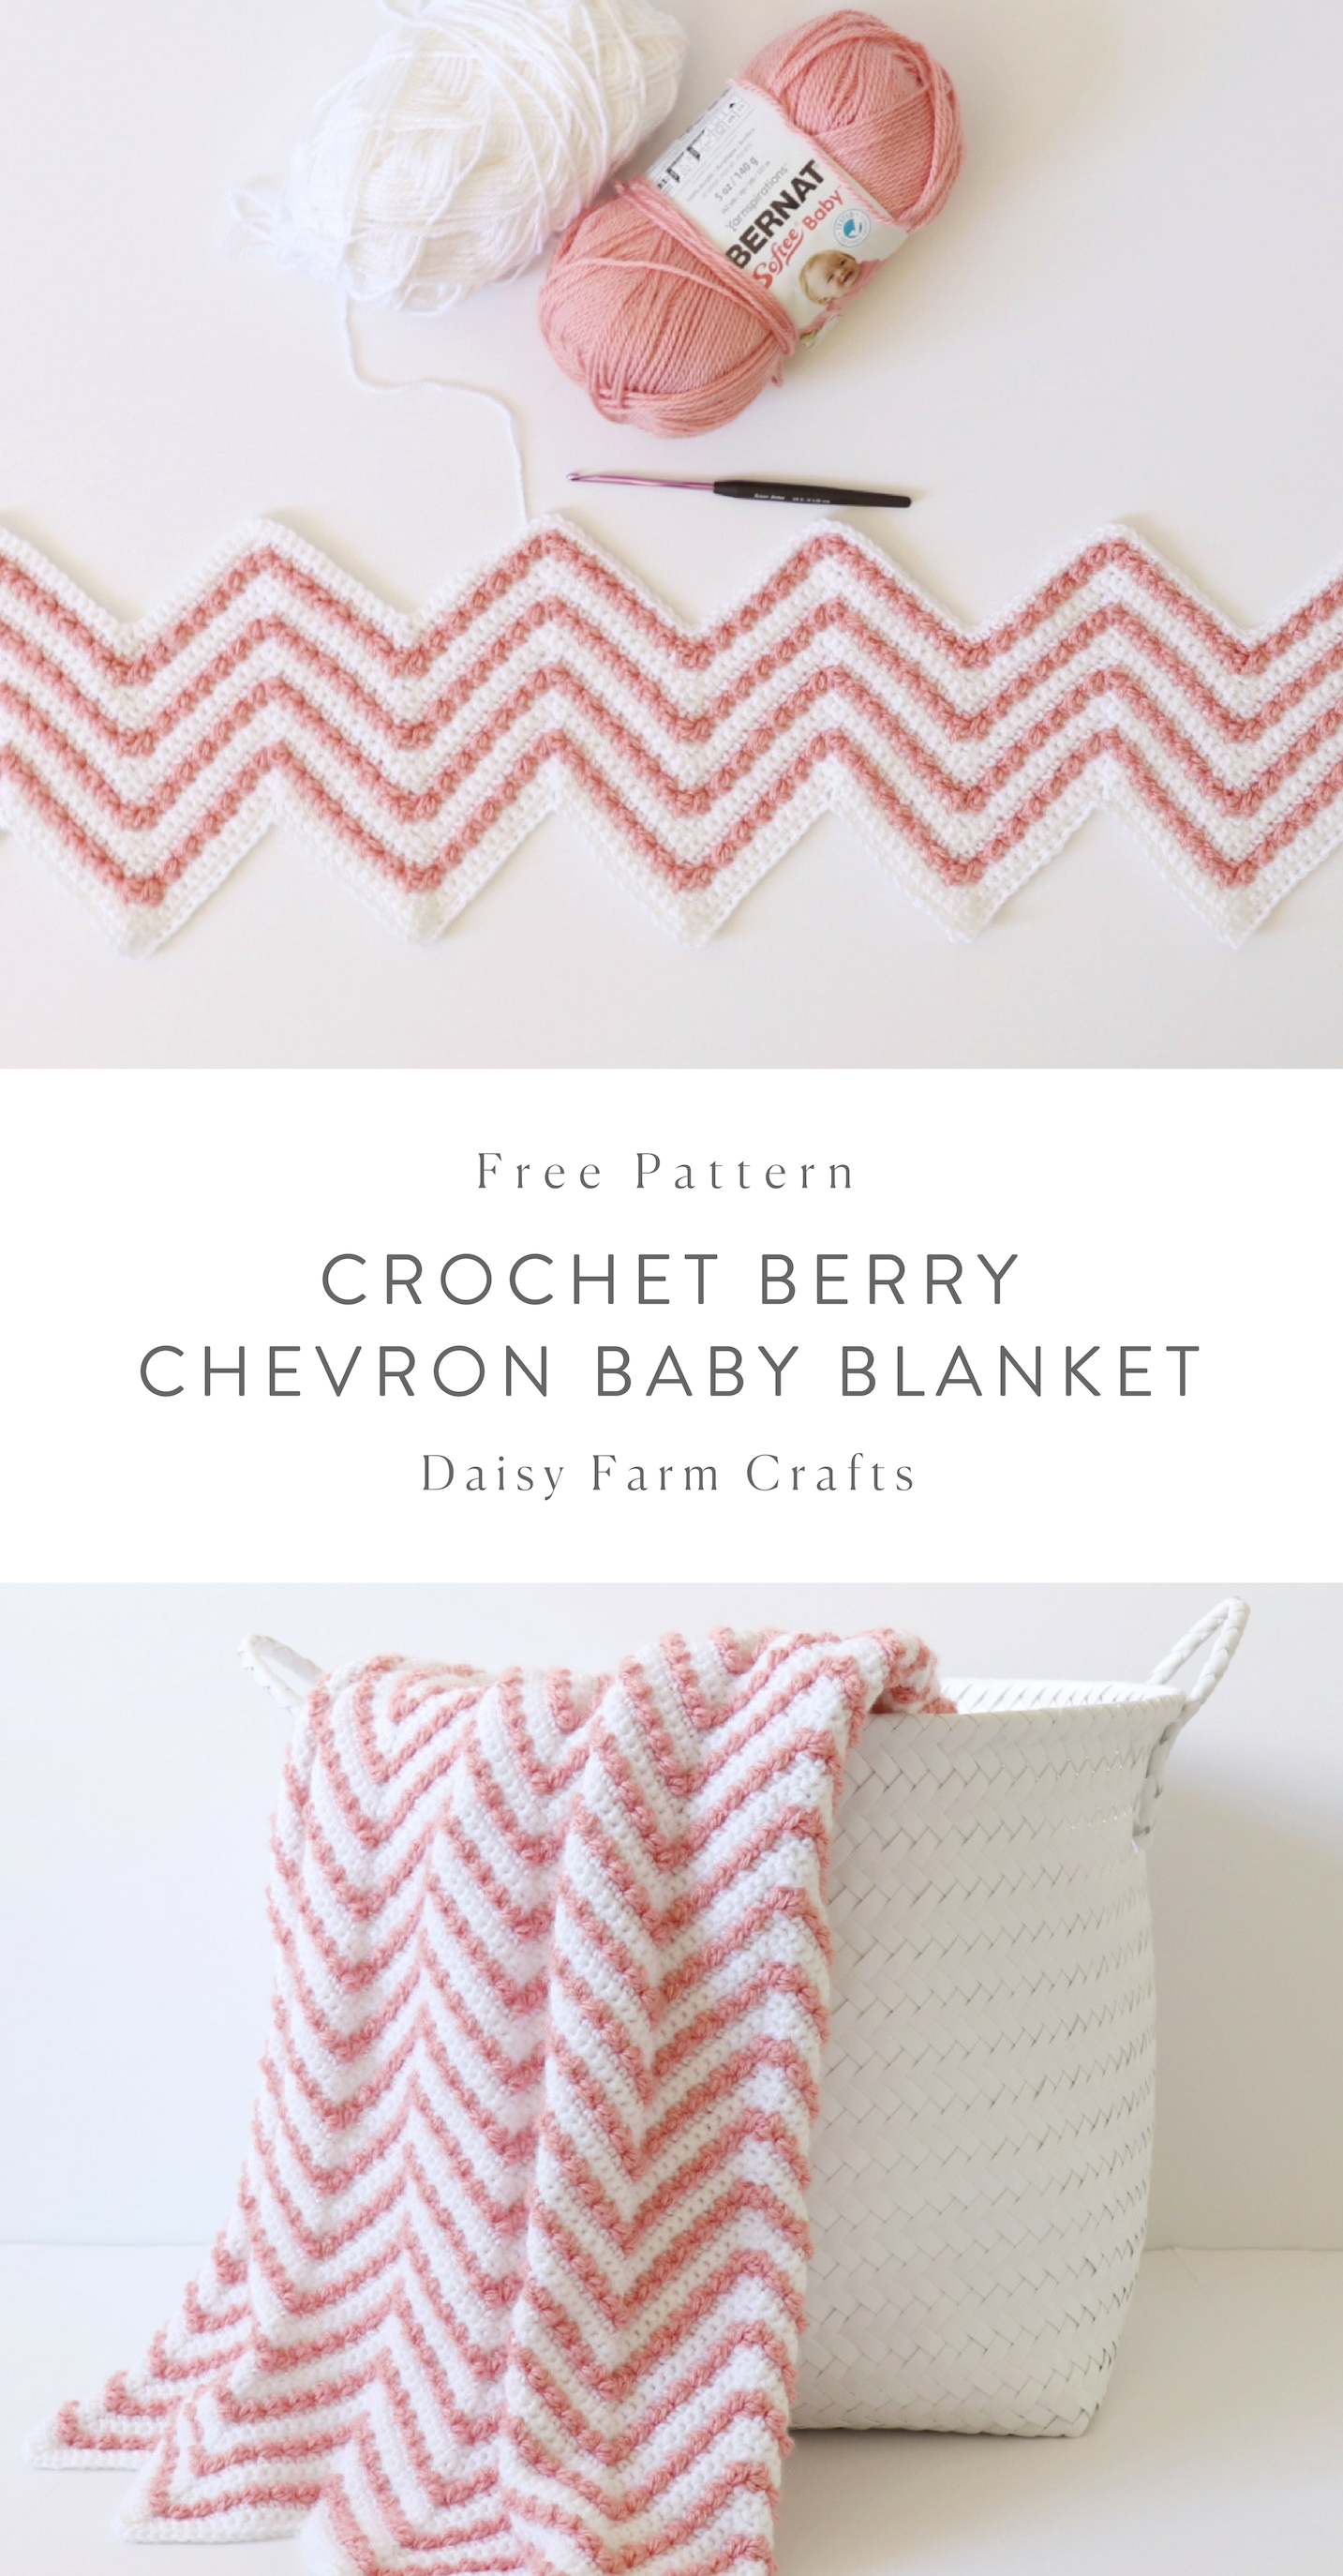 Free Pattern - Crochet Berry Chevron Baby Blanket | knit/crochet ...